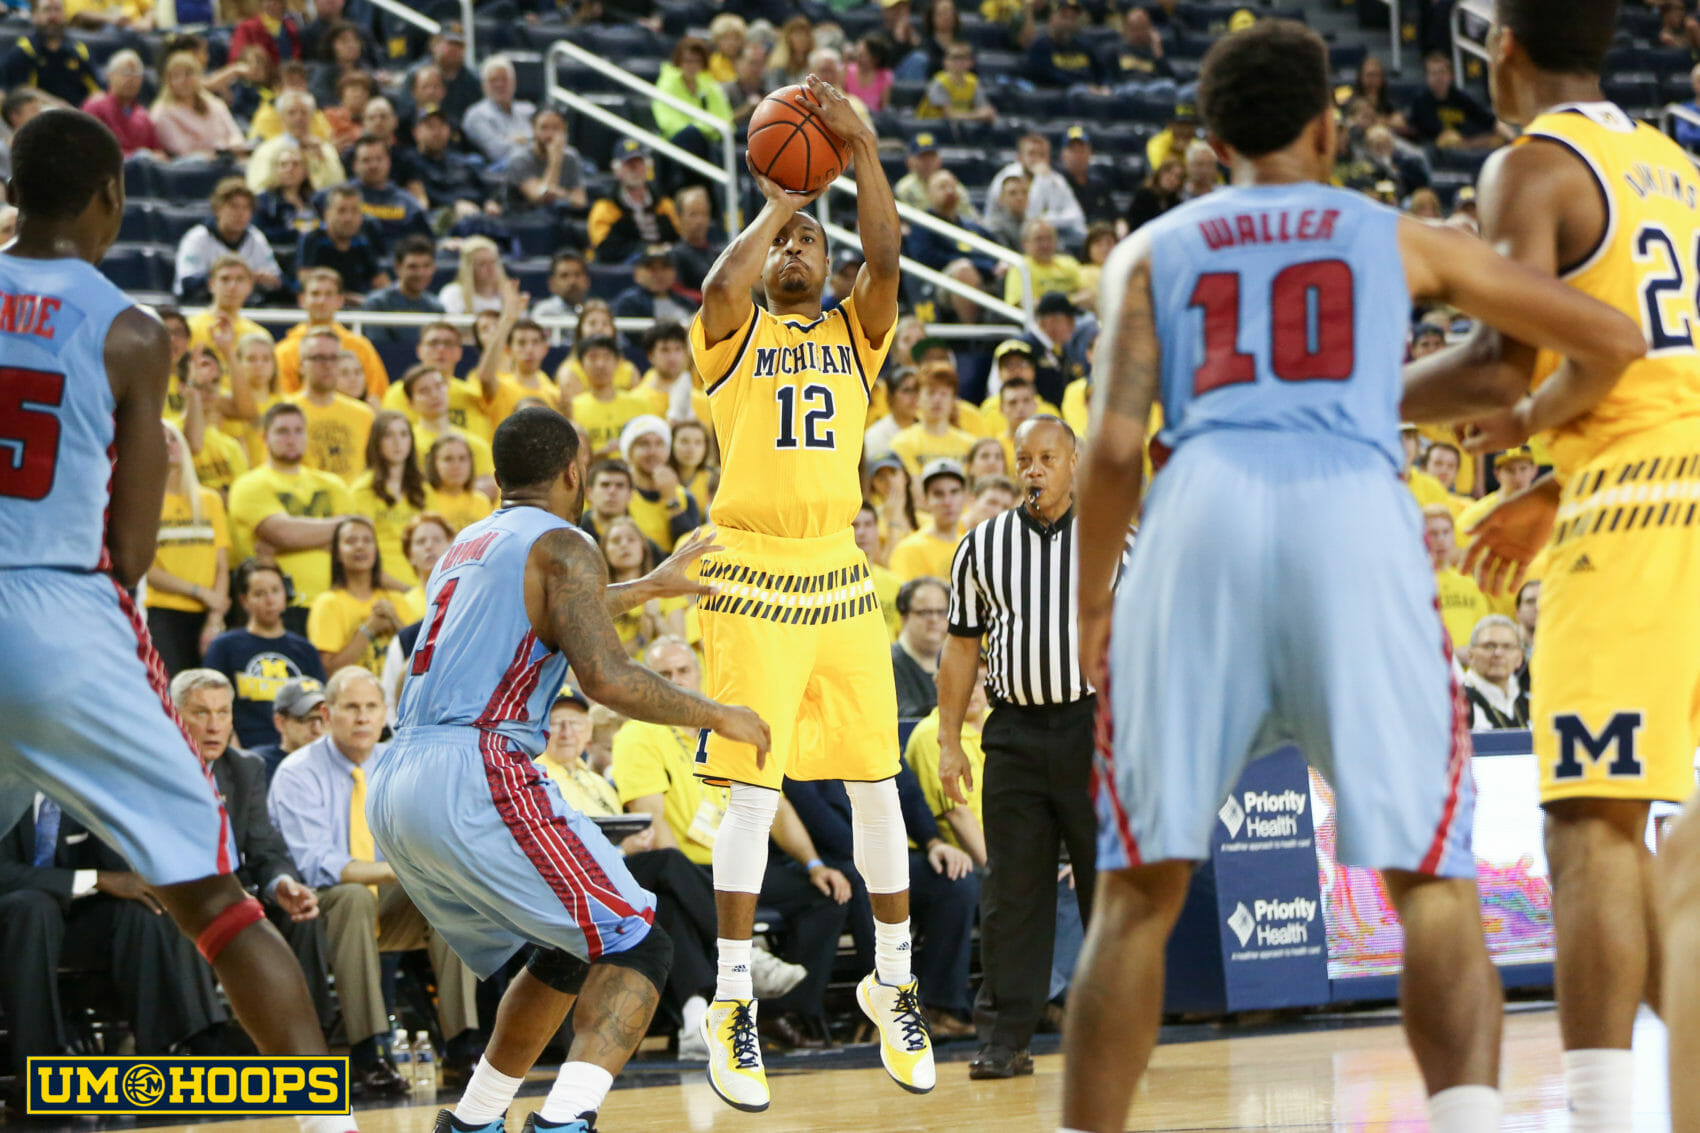 Michigan 80, Delaware State 33-29